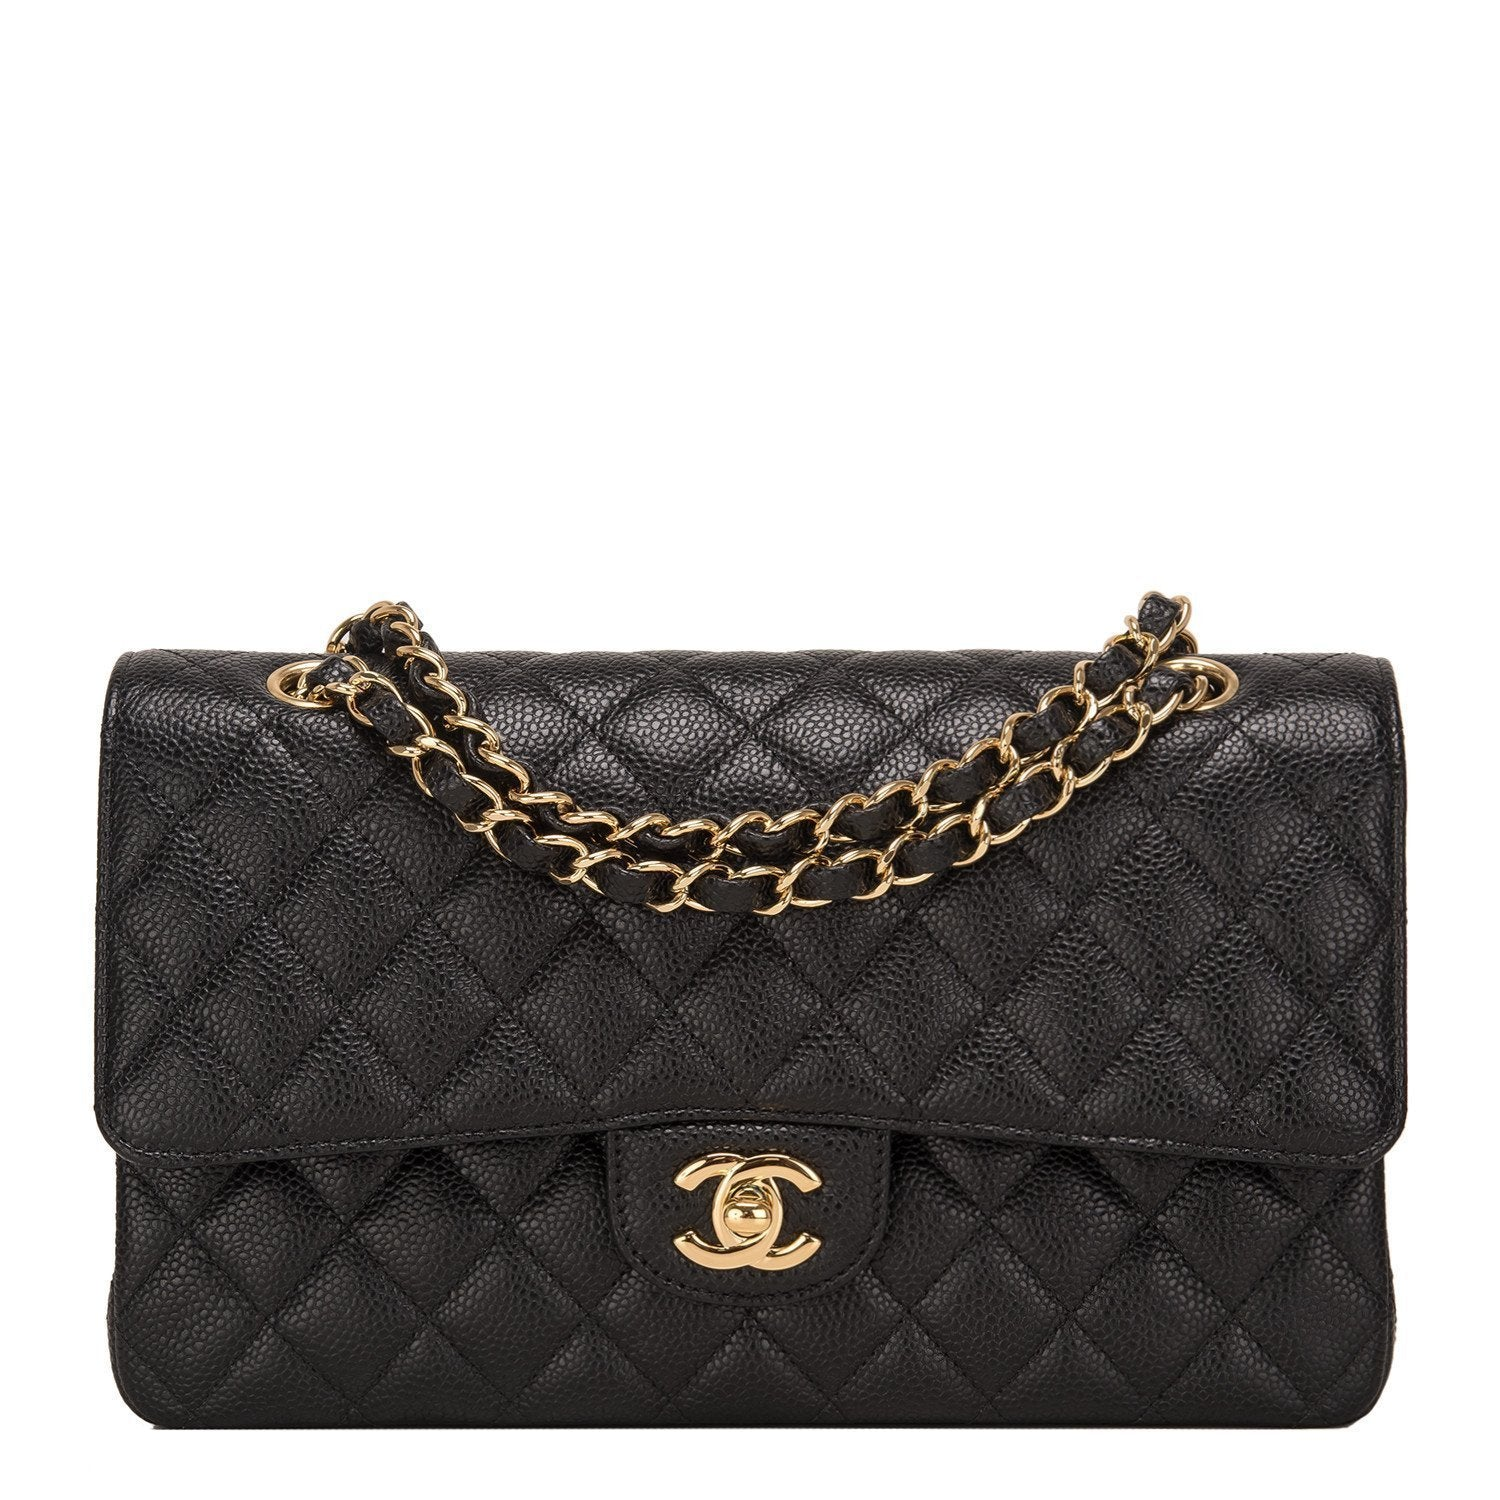 Chanel Black Quilted Caviar Medium Classic Double Flap Bag Handbags